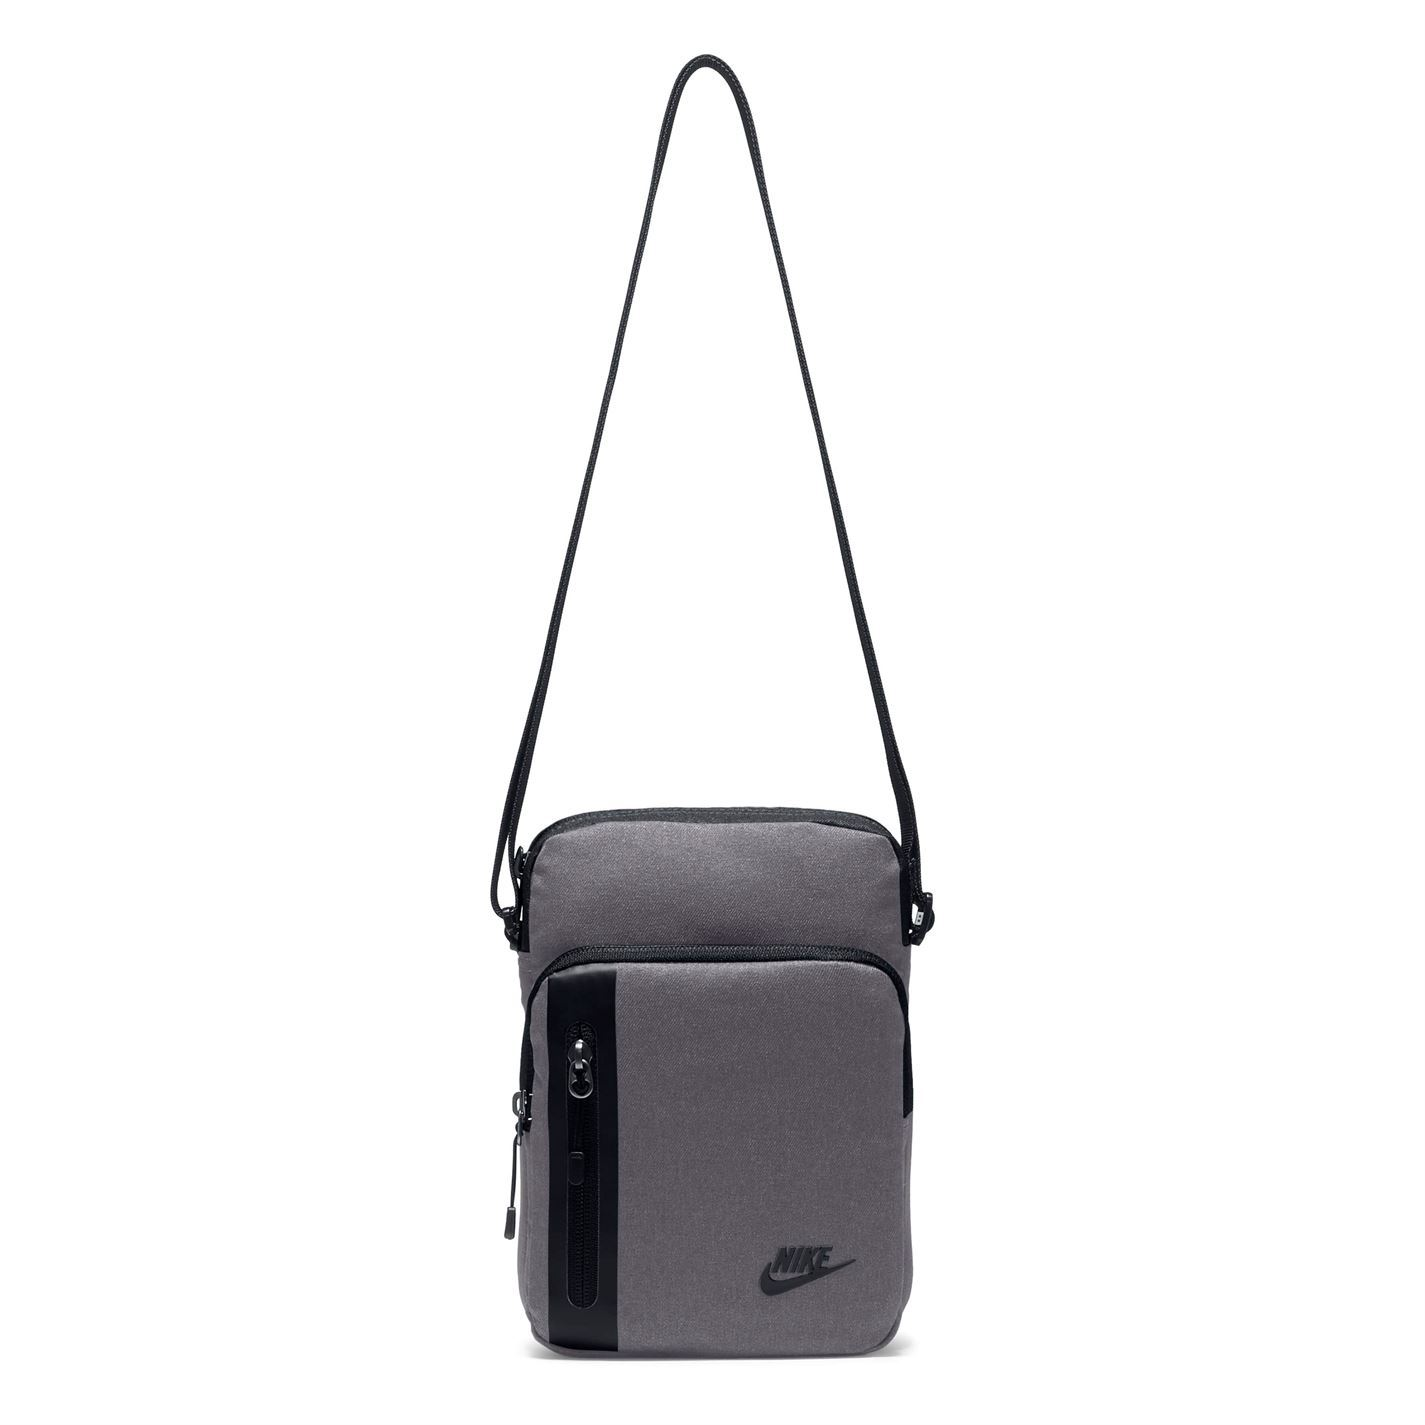 e20be22195a ... Nike Small Items Bag Shoulder Bag Mini Bag Gadget Bag ...